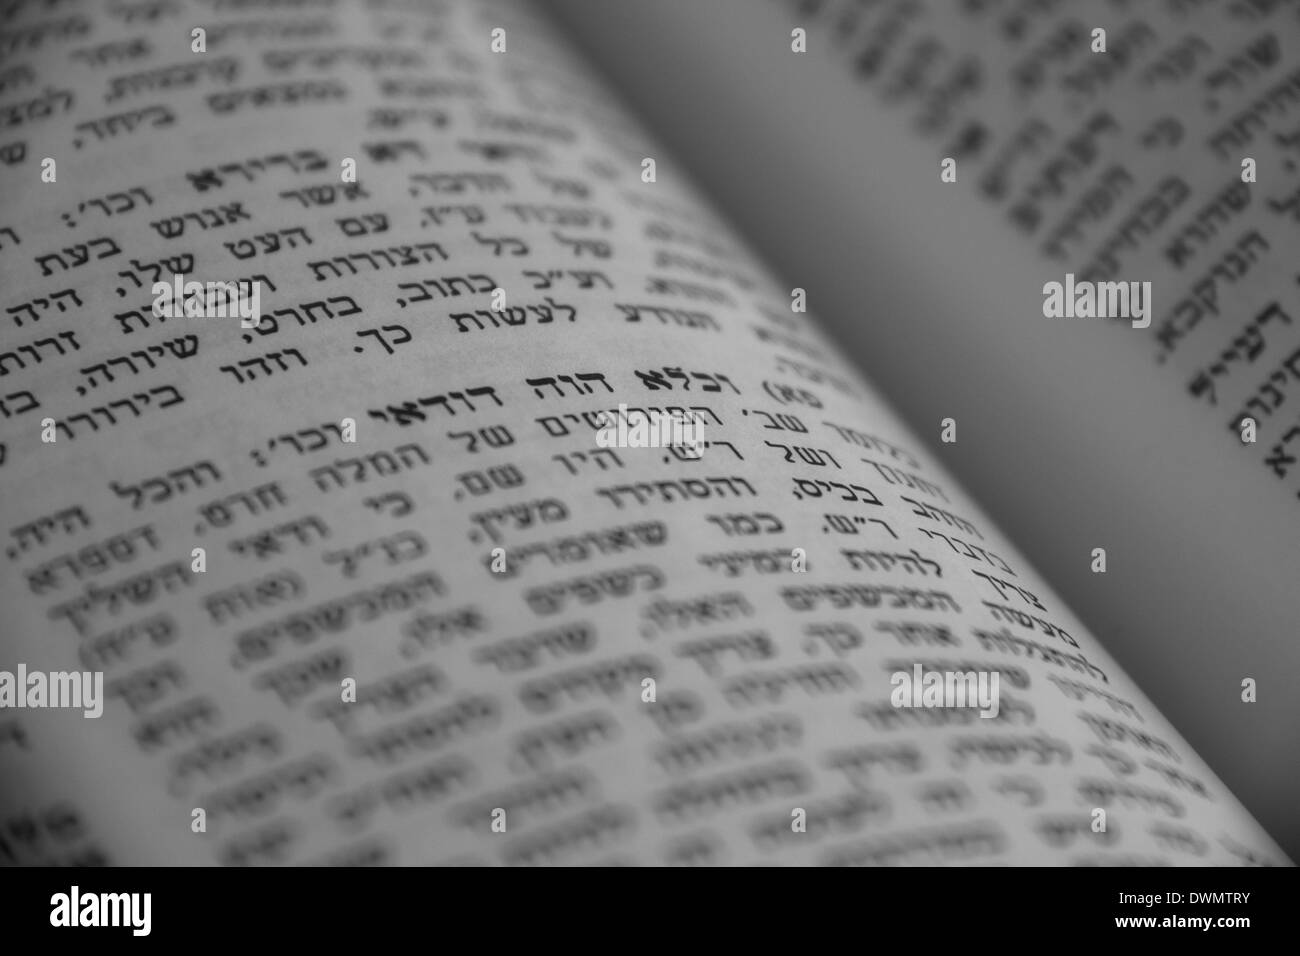 Fragment of Mystical Kabbalistic 'Zohar' Book - Medieval esoteric Knowledge of Judaism.Black And White Image - Stock Image